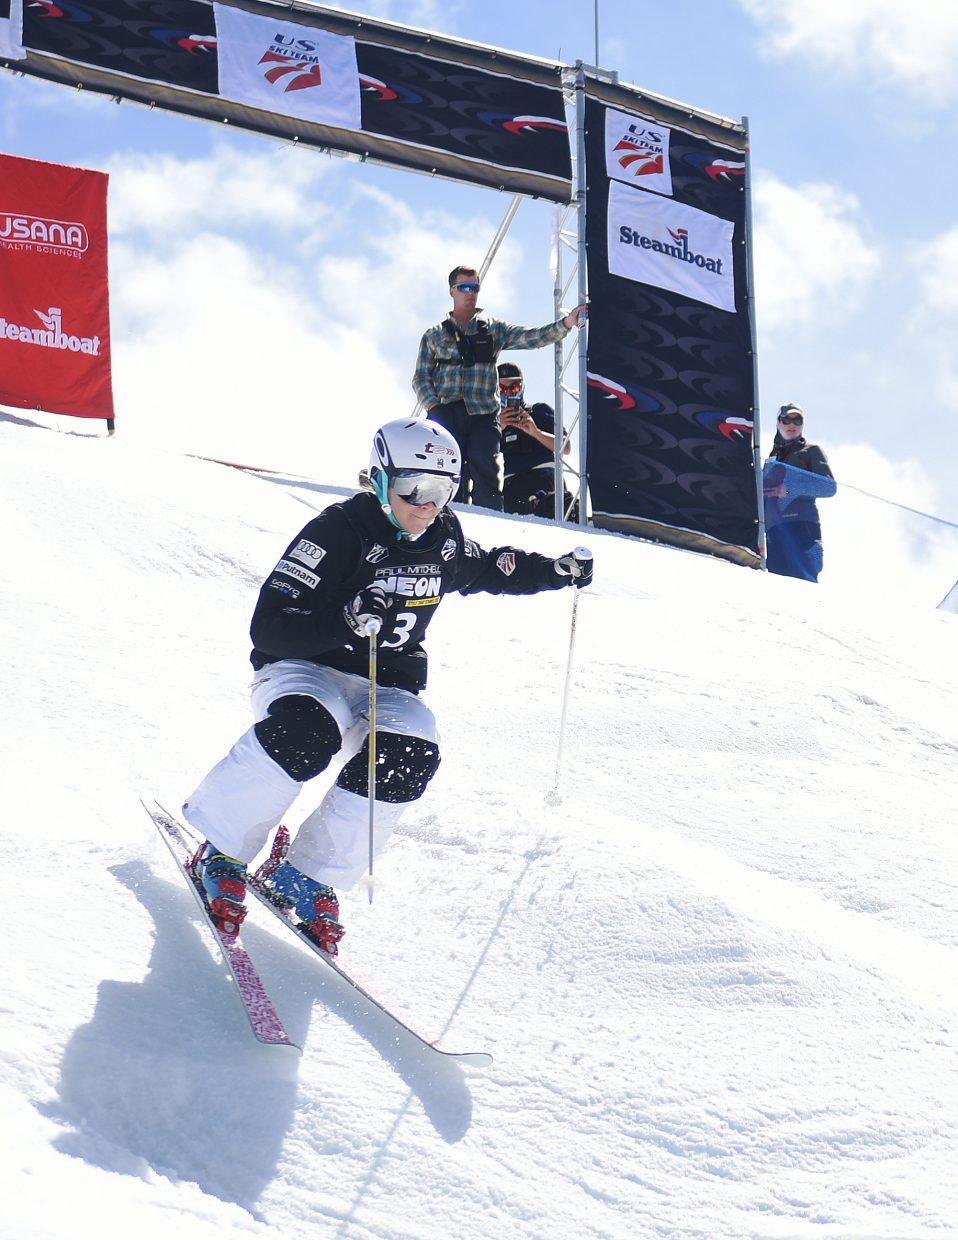 KC Oakley attacks the moguls course Saturday at the U.S. Freestyle National Championships in Steamboat Springs.